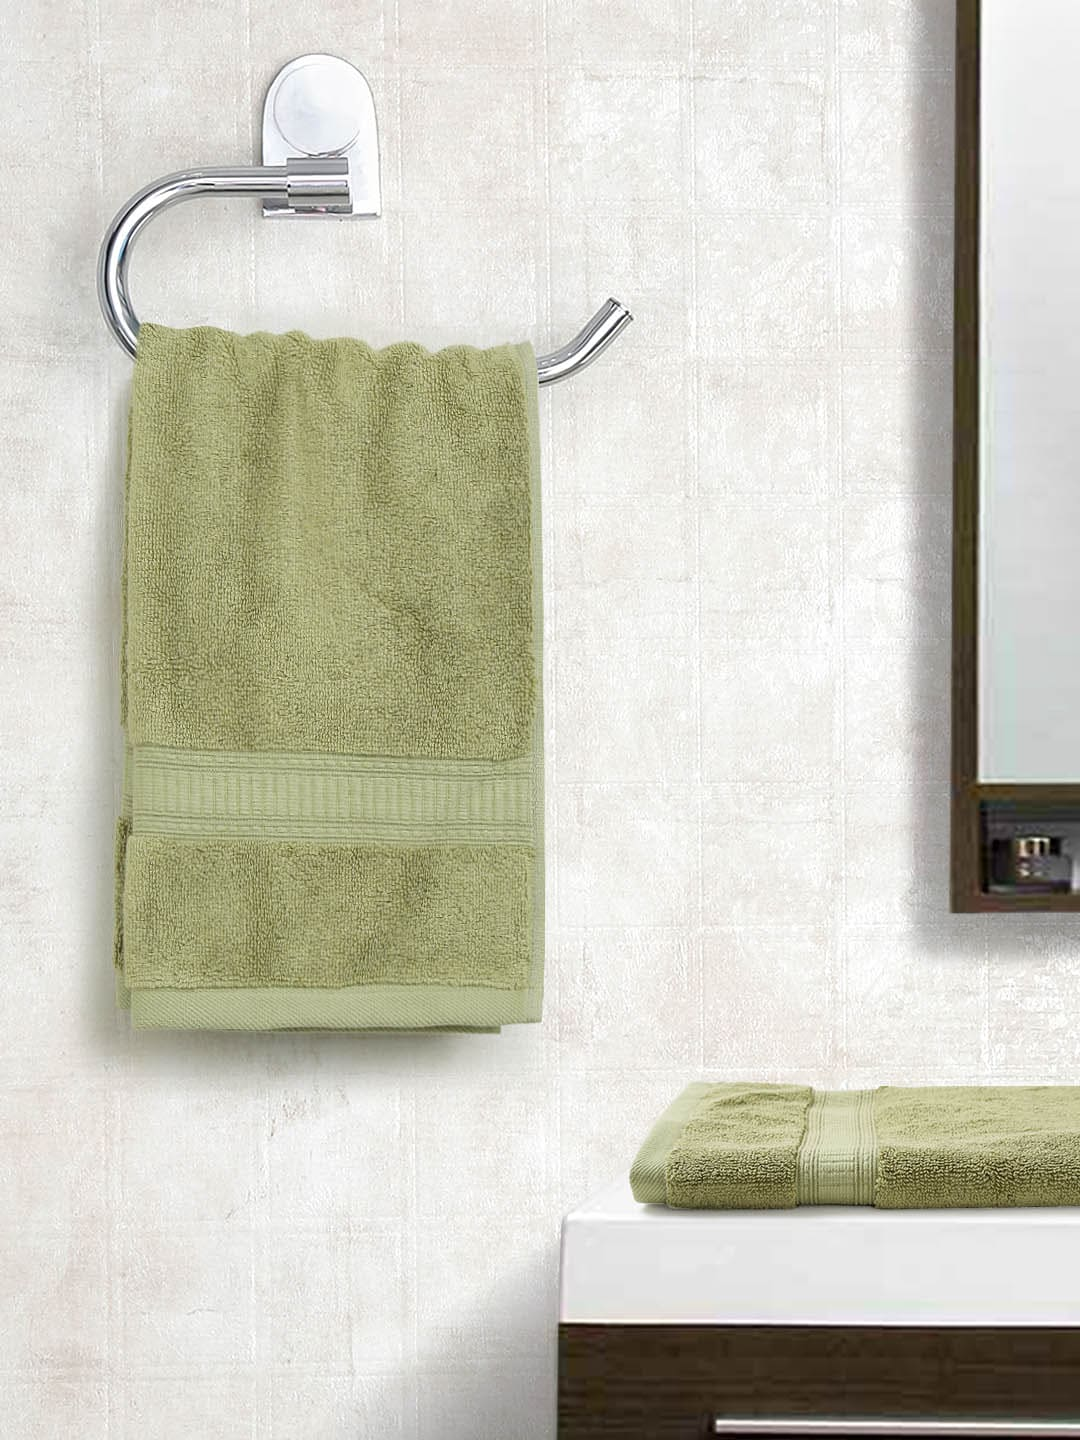 cotton hand towels for bathroom. cotton hand towels for bathroom